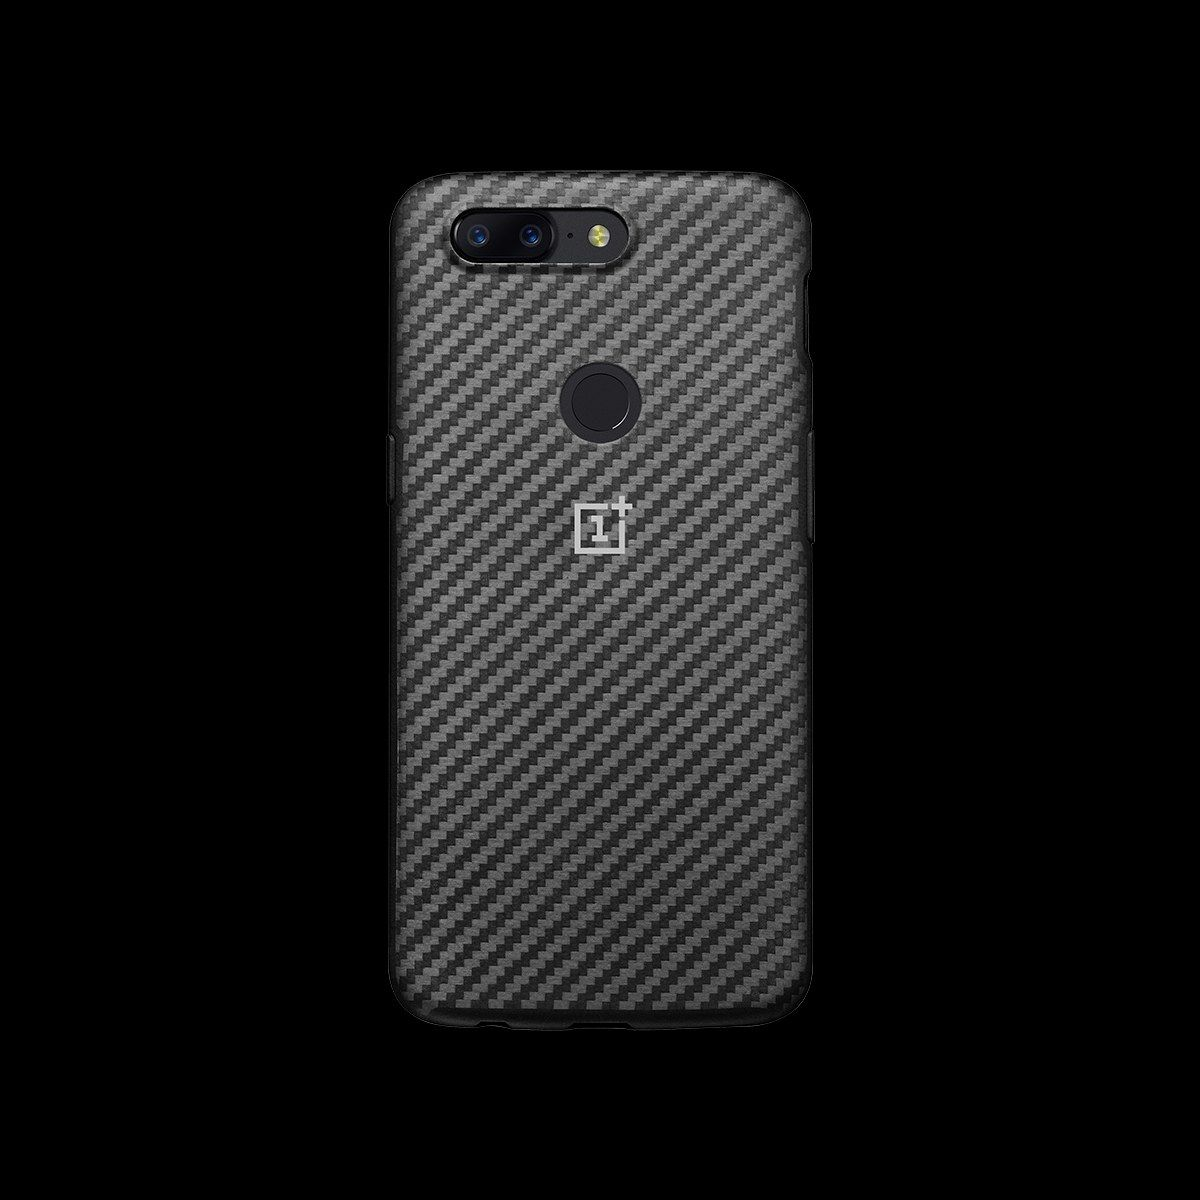 info for 21a29 986cd OnePlus 5t Back cover - OnePlus Community